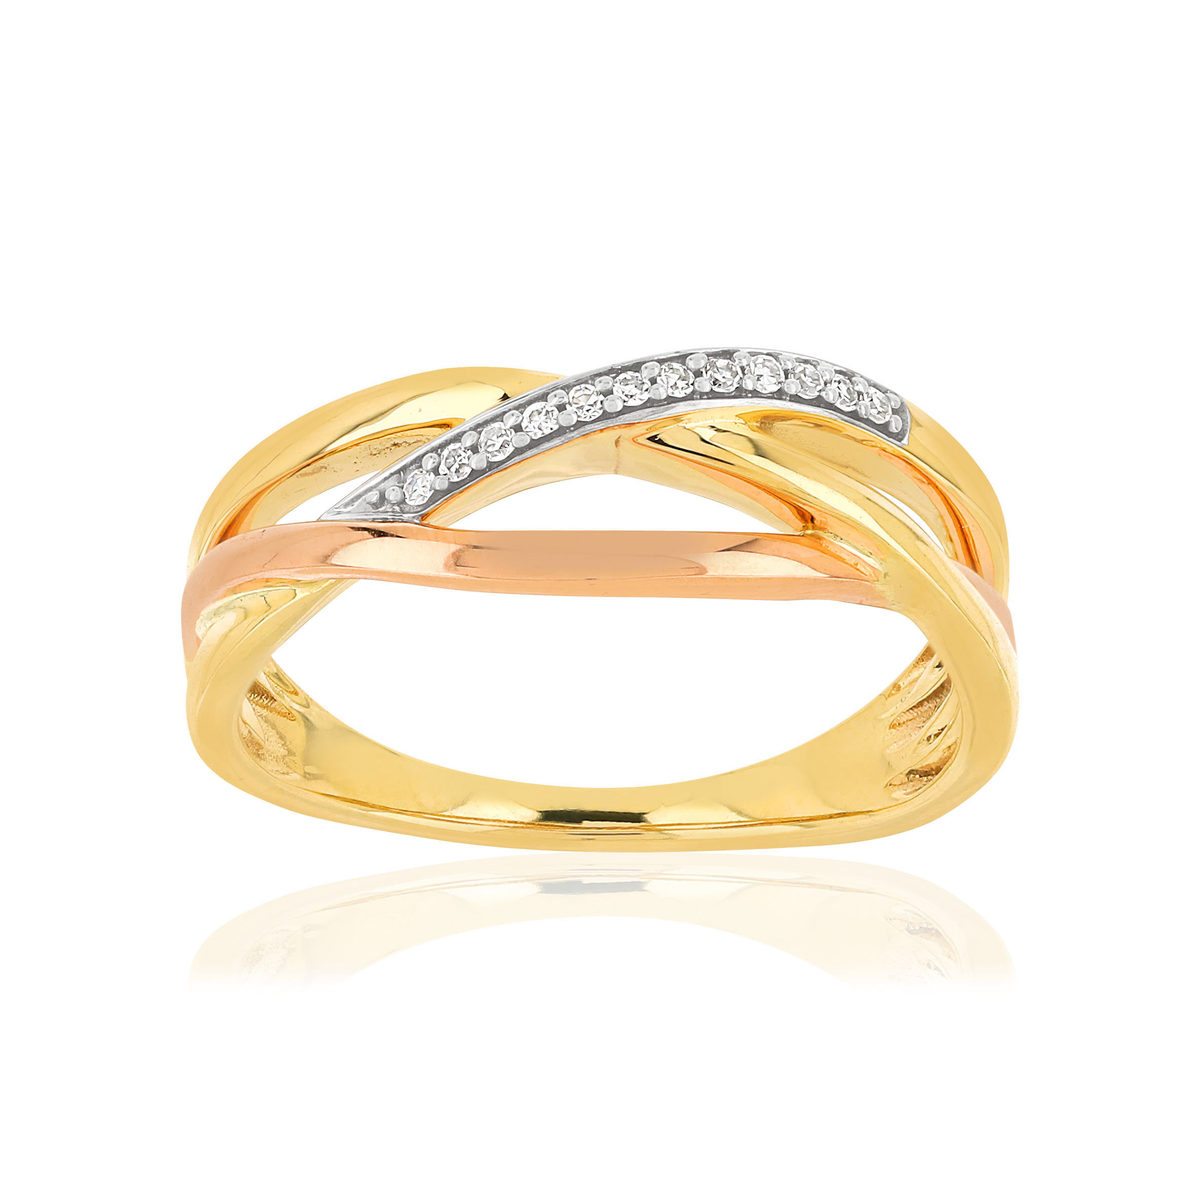 Bague MATY Or 375 2 ors Diamants - vue V1